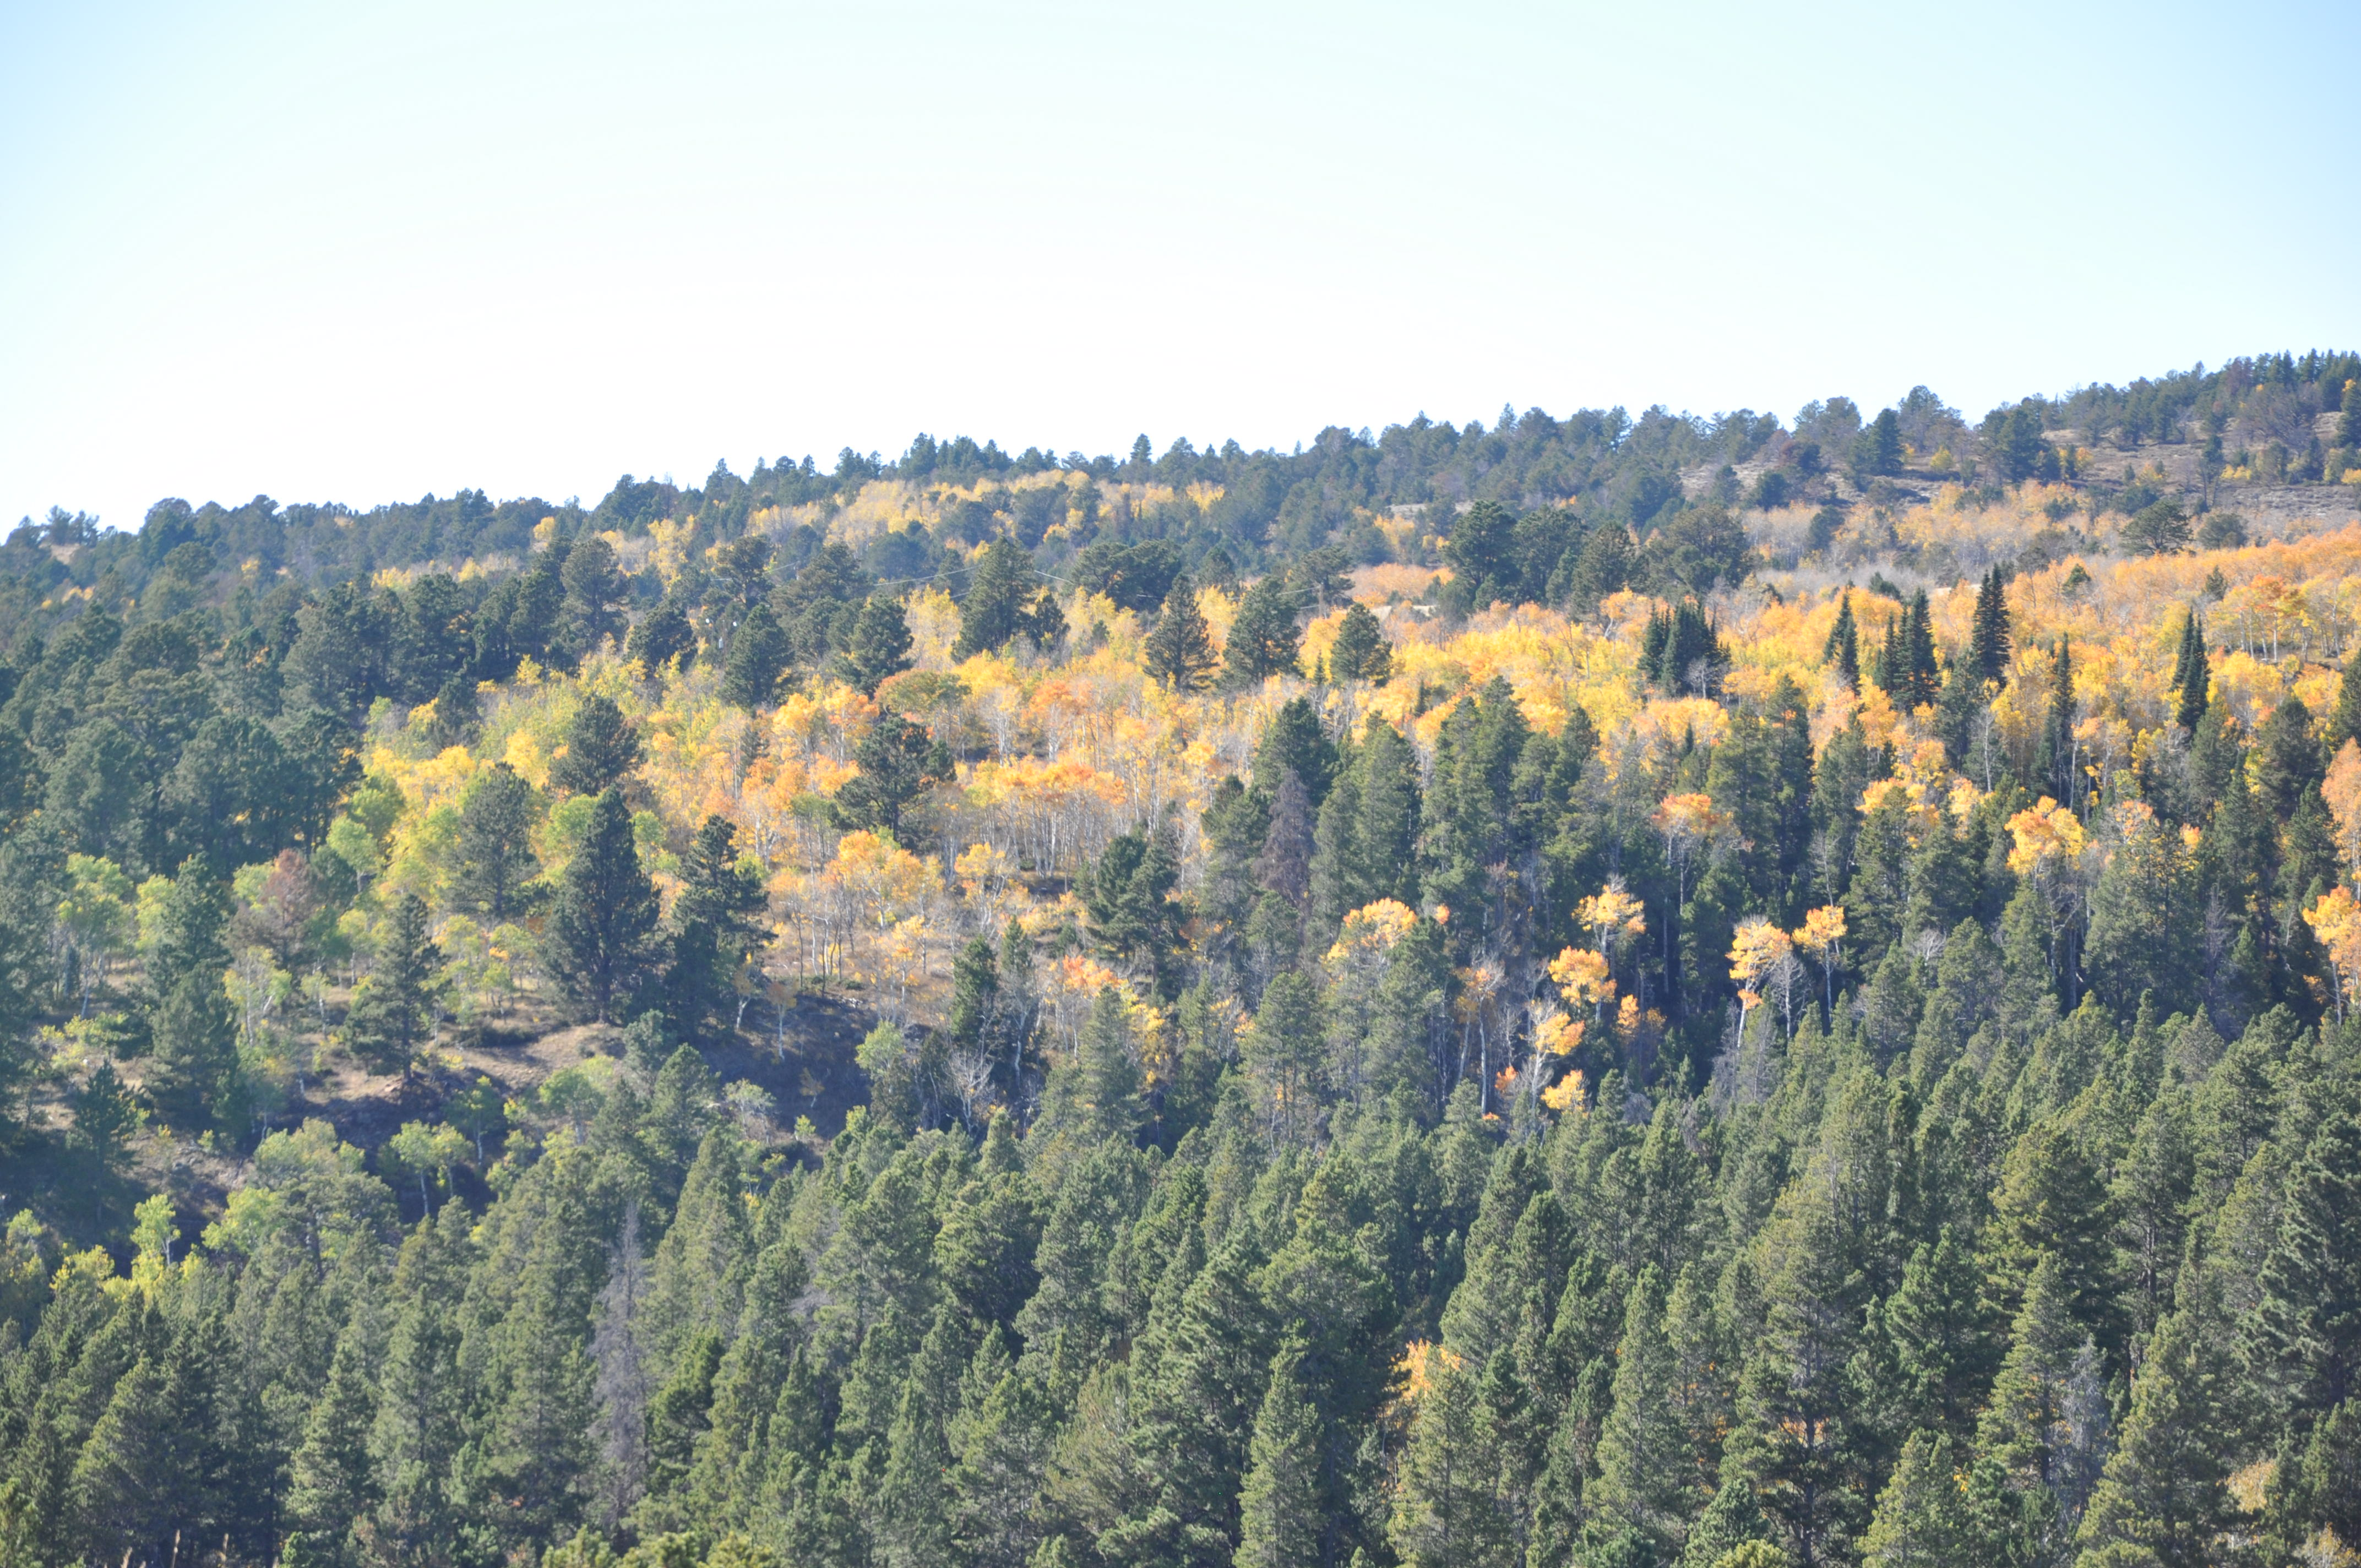 Yellow Aspen mixed in with Pine trees